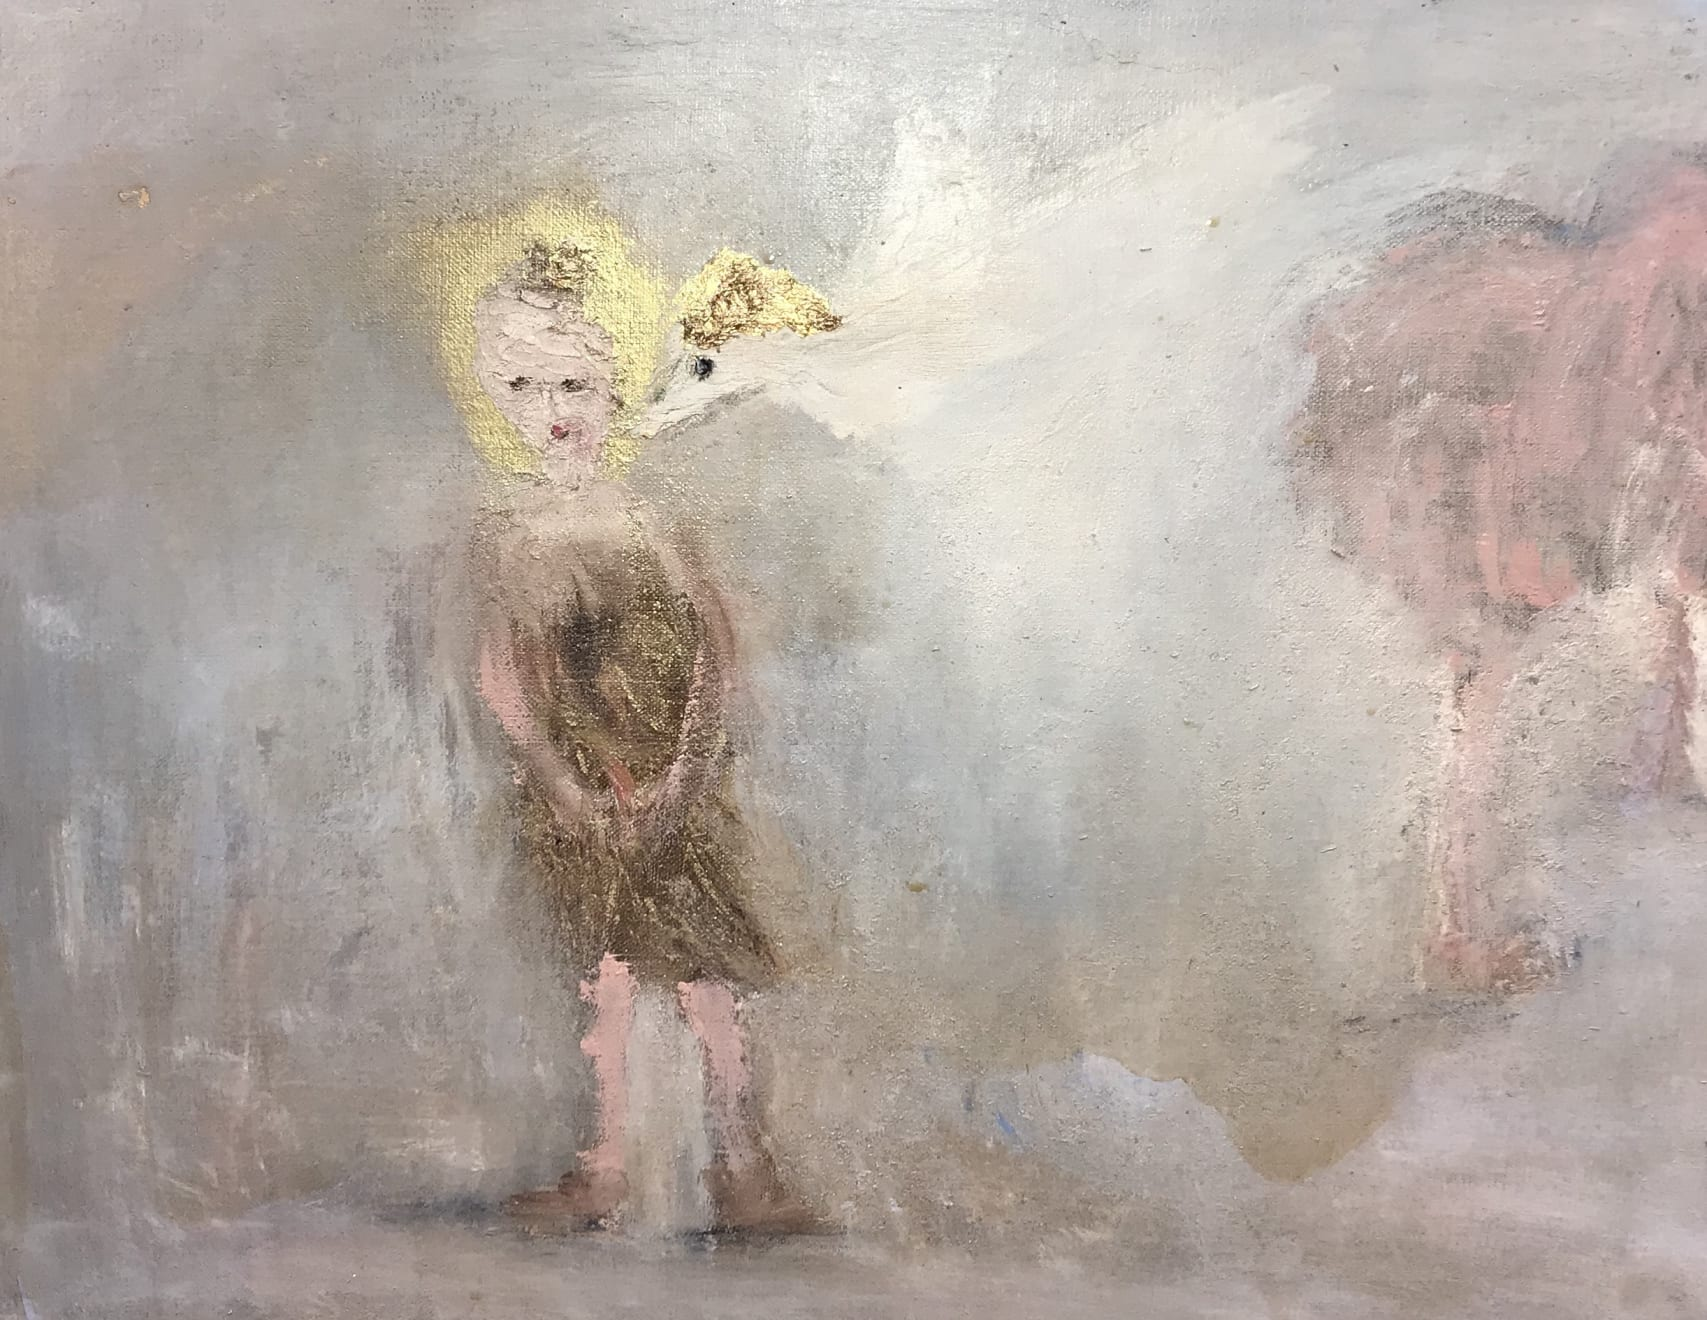 Hilary Herrmann Morning Calm Oil on Canvas, Gold Leaf and Gold Pigment Original 50 x 45 cm $1800 £900